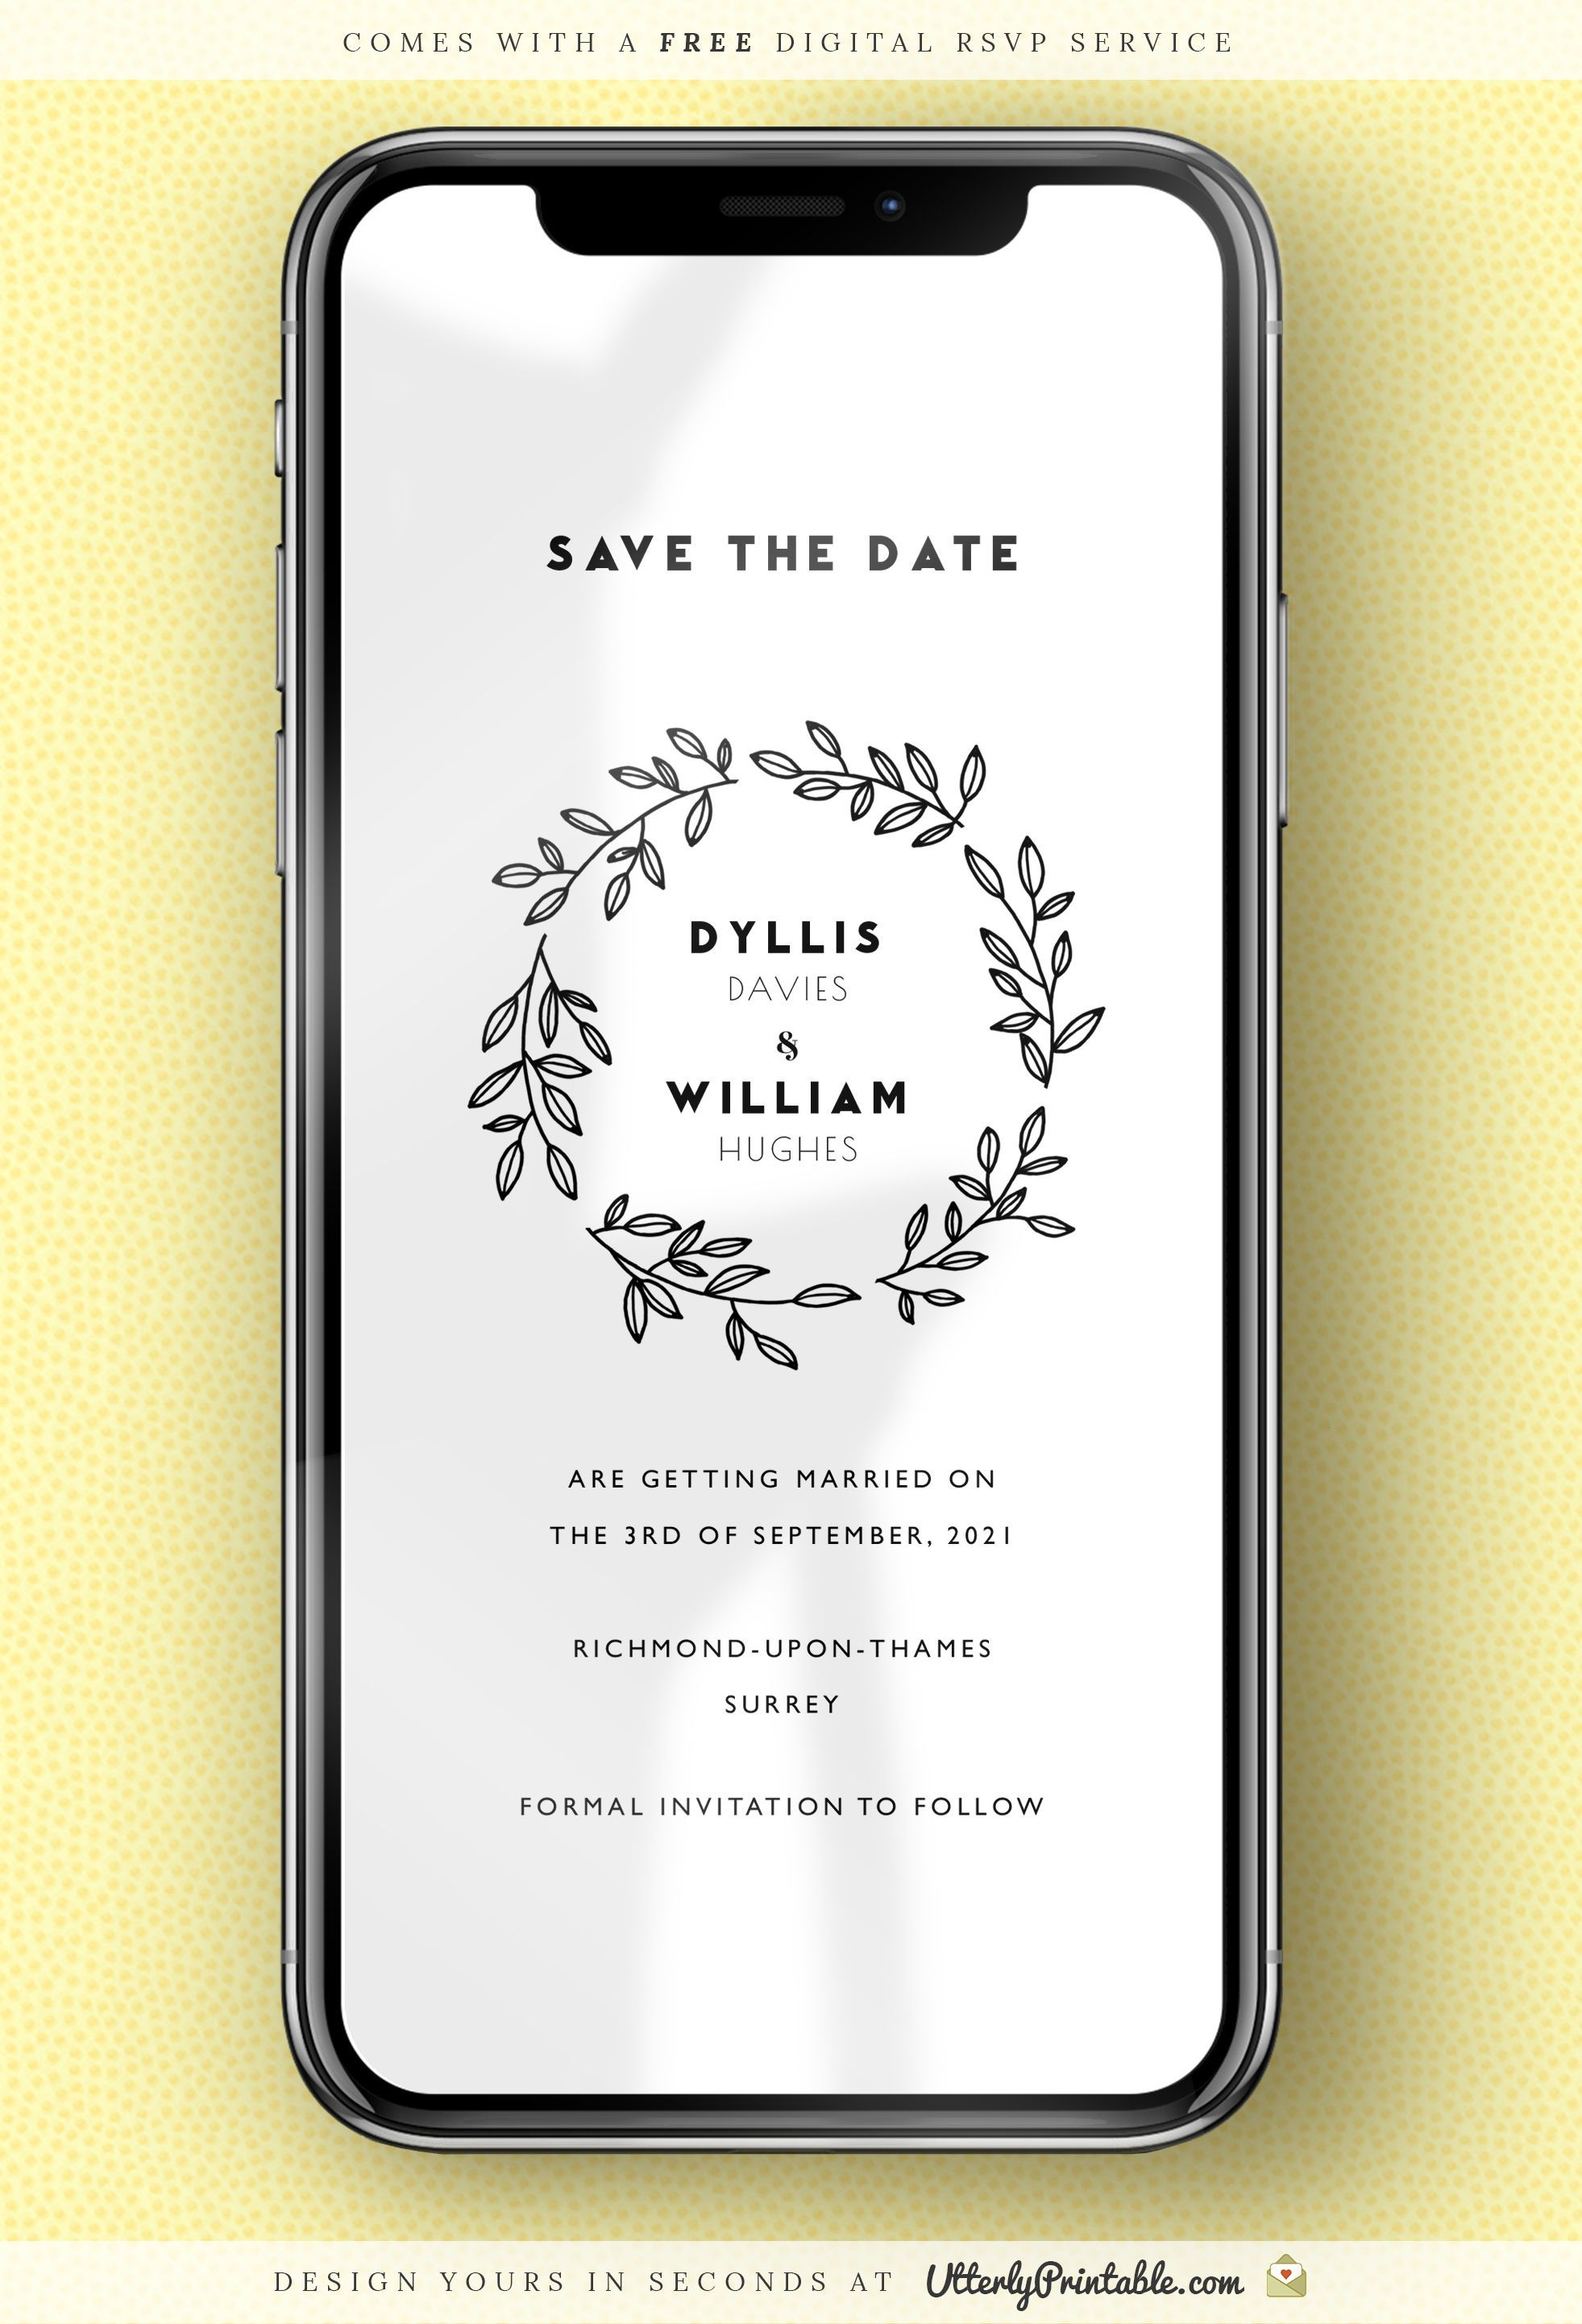 Electronic Wedding Save The Date Simple Wreath Digital Save The Date For Whatsapp Text Dig Wedding Saving Save The Date Designs Wedding Save The Dates